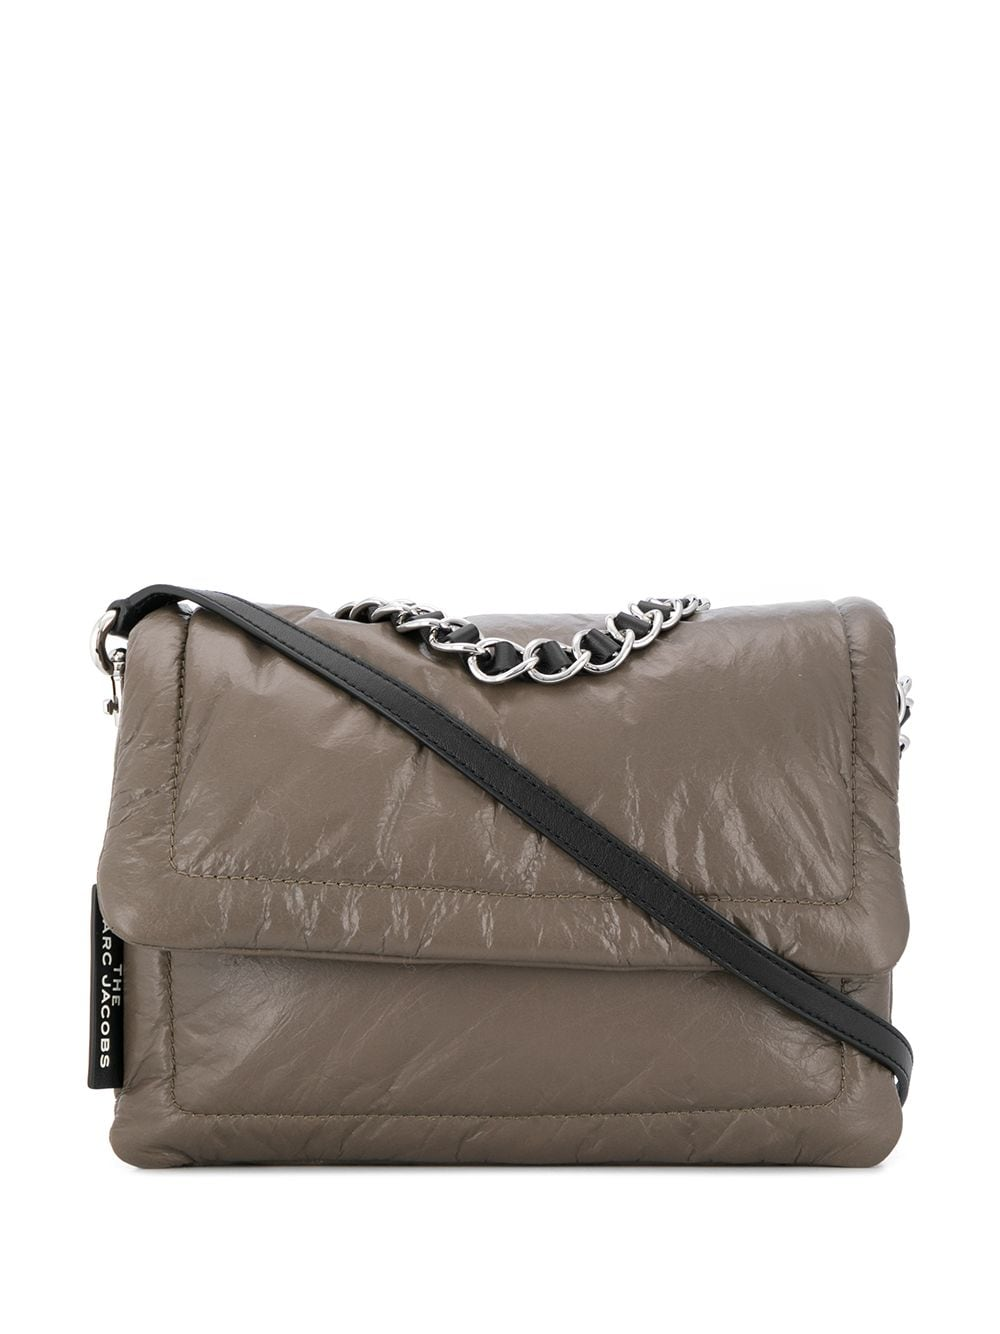 The Pillow Leather Bag